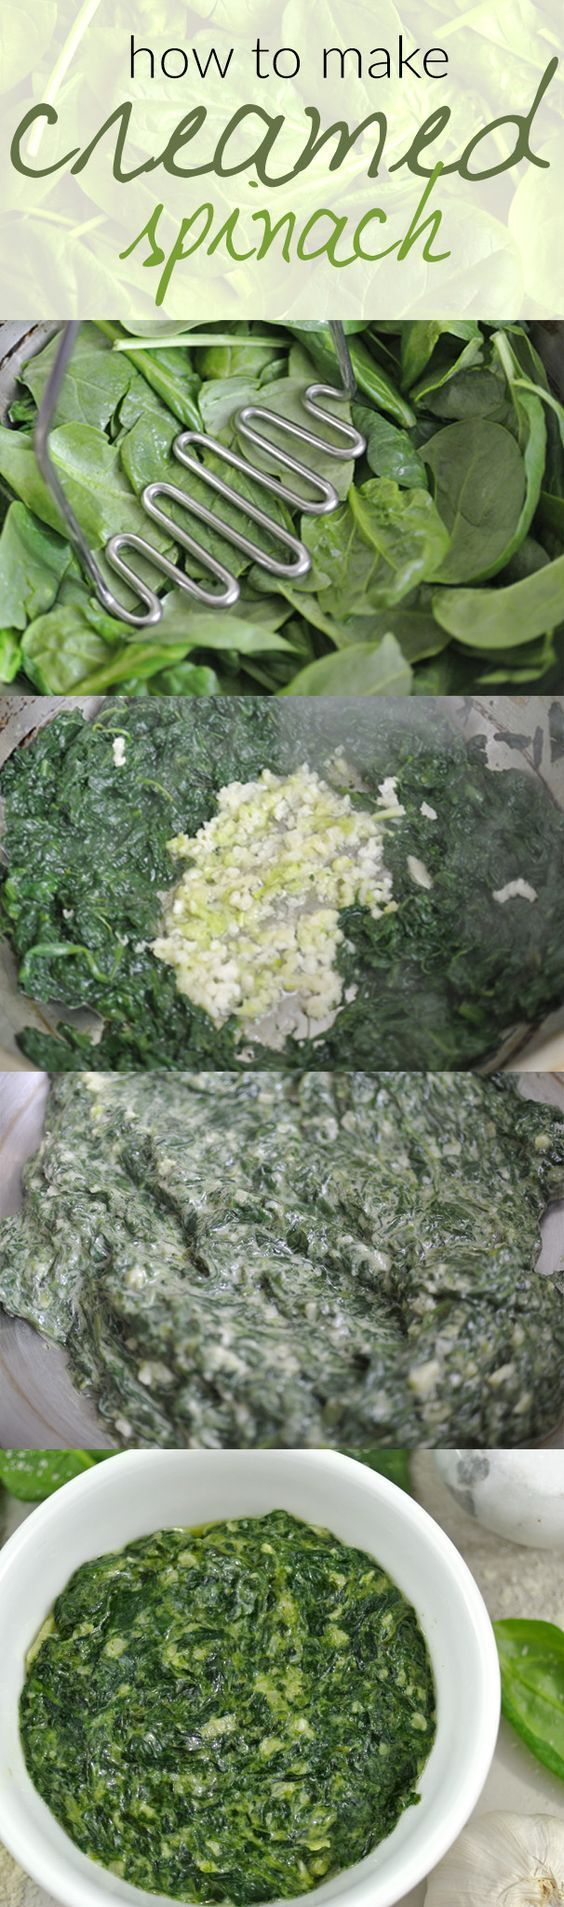 Creamed Spinach with Parmesan Cheese - Low carb, gluten free and grain free | VIDEO RECIPE from www.tasteaholics.com